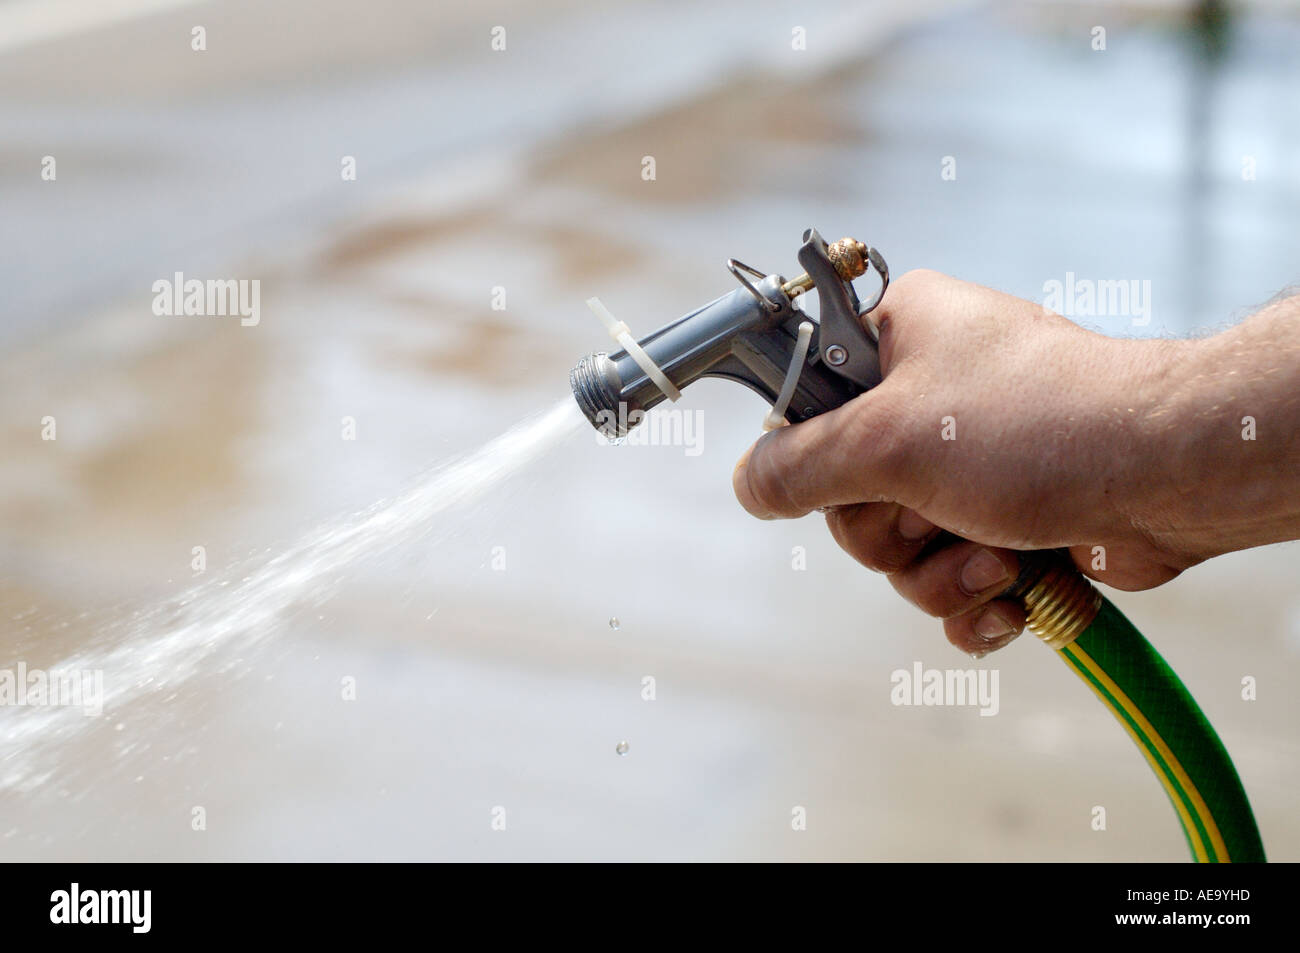 Mans hand spraying water from a garden hose - Stock Image